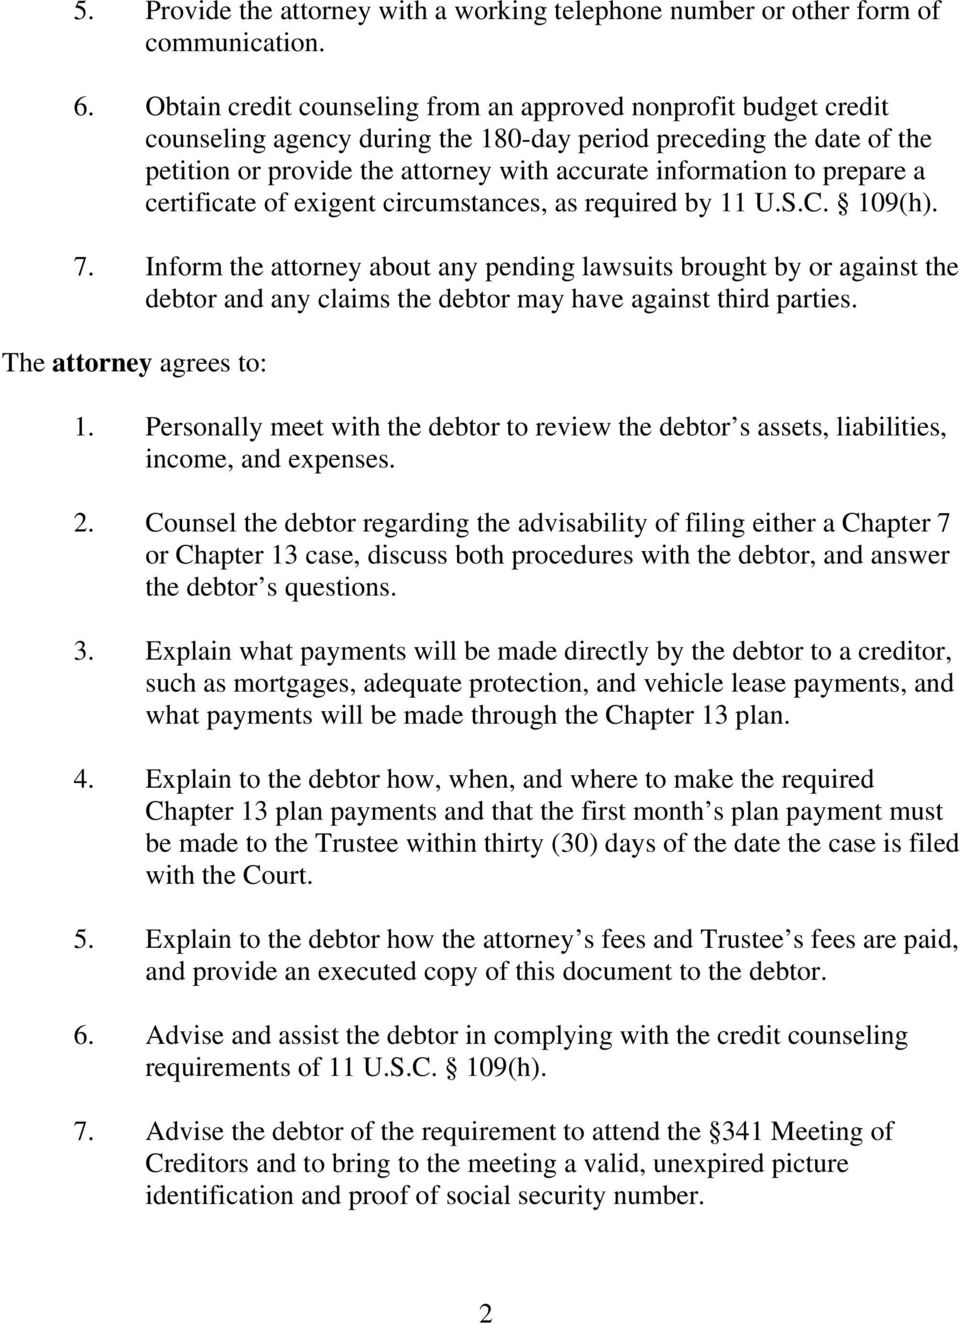 prepare a certificate of exigent circumstances, as required by 11 U.S.C. 109(h). 7.